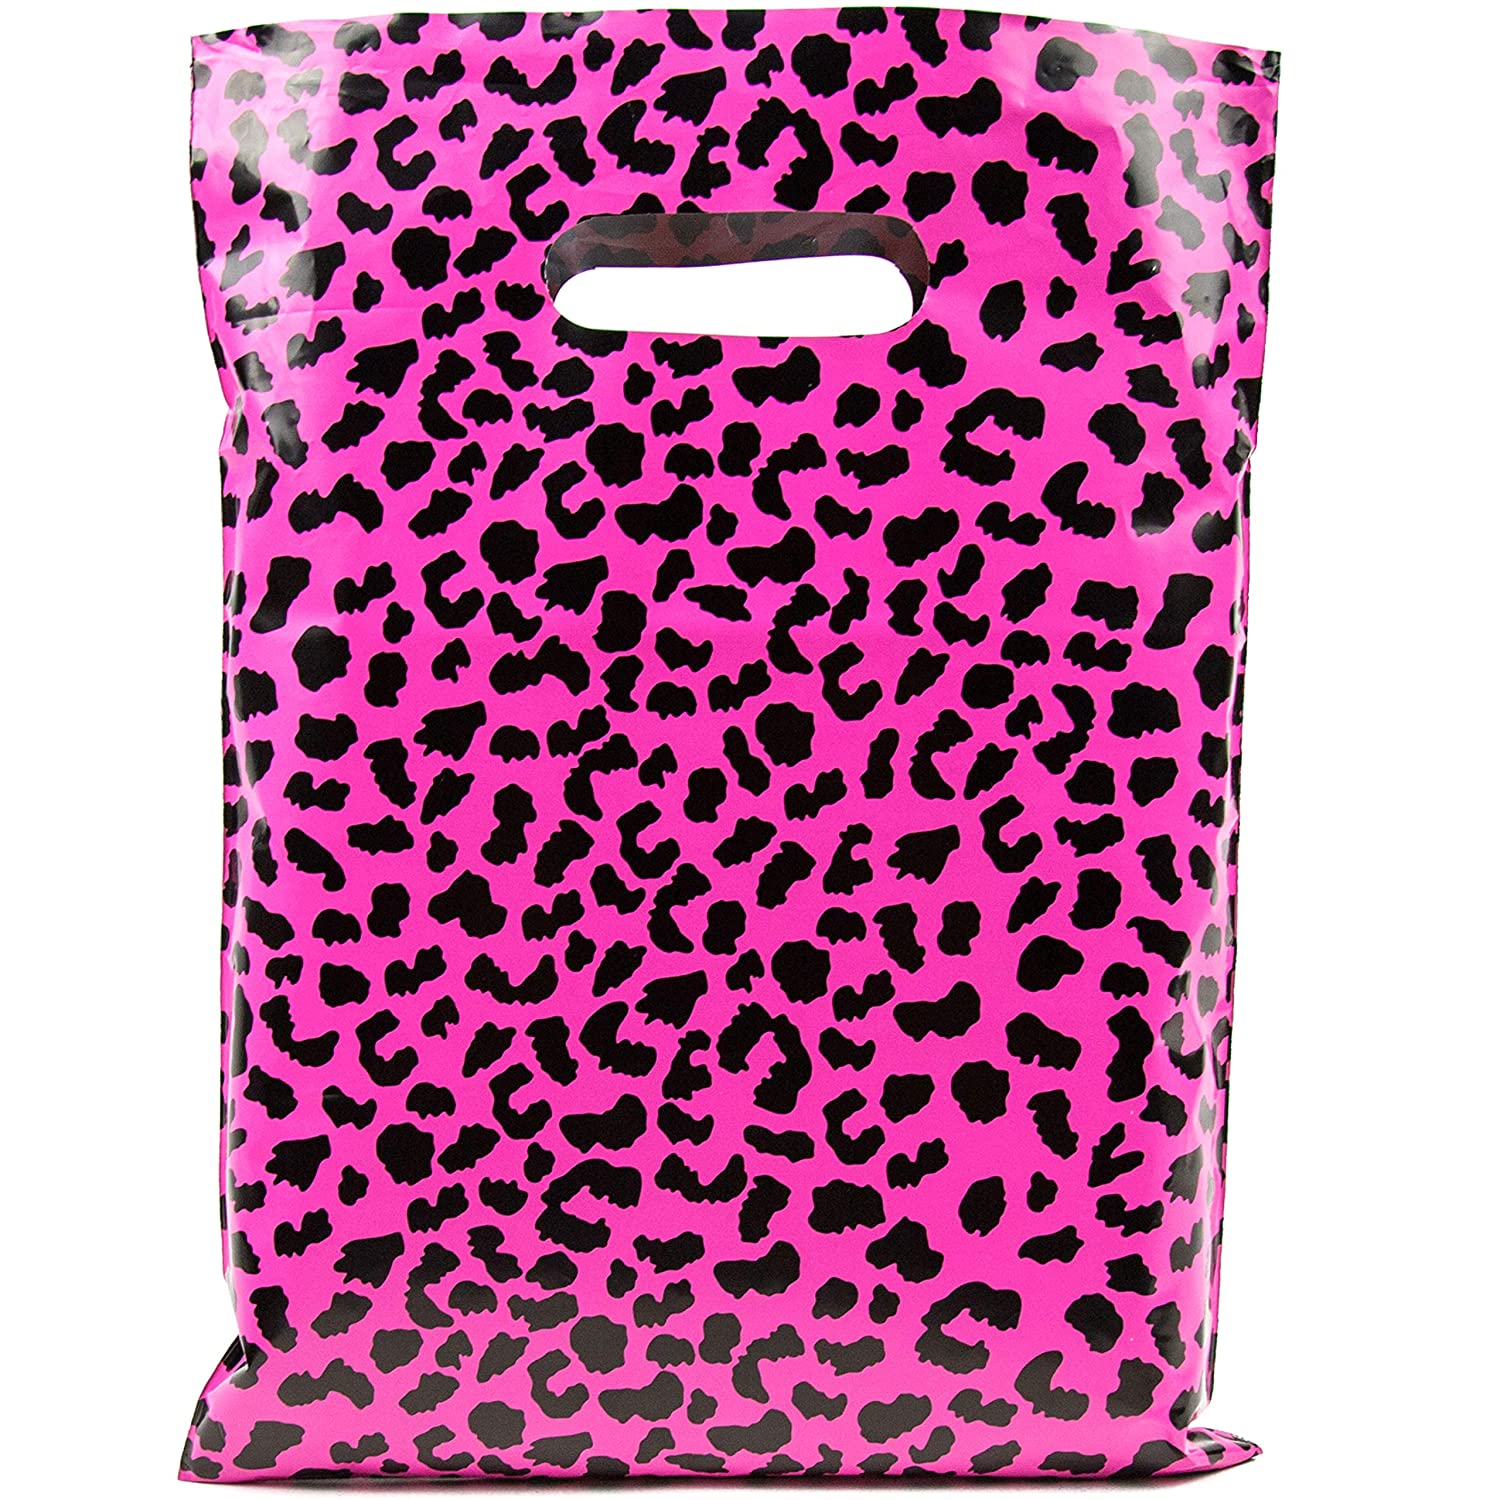 Merchandise Bags 12x15-100 Pack - Hot Pink Cheetah - Glossy Retail Bags - Shopping Bags for Boutique - Boutique Bags - Plastic Shopping Bags